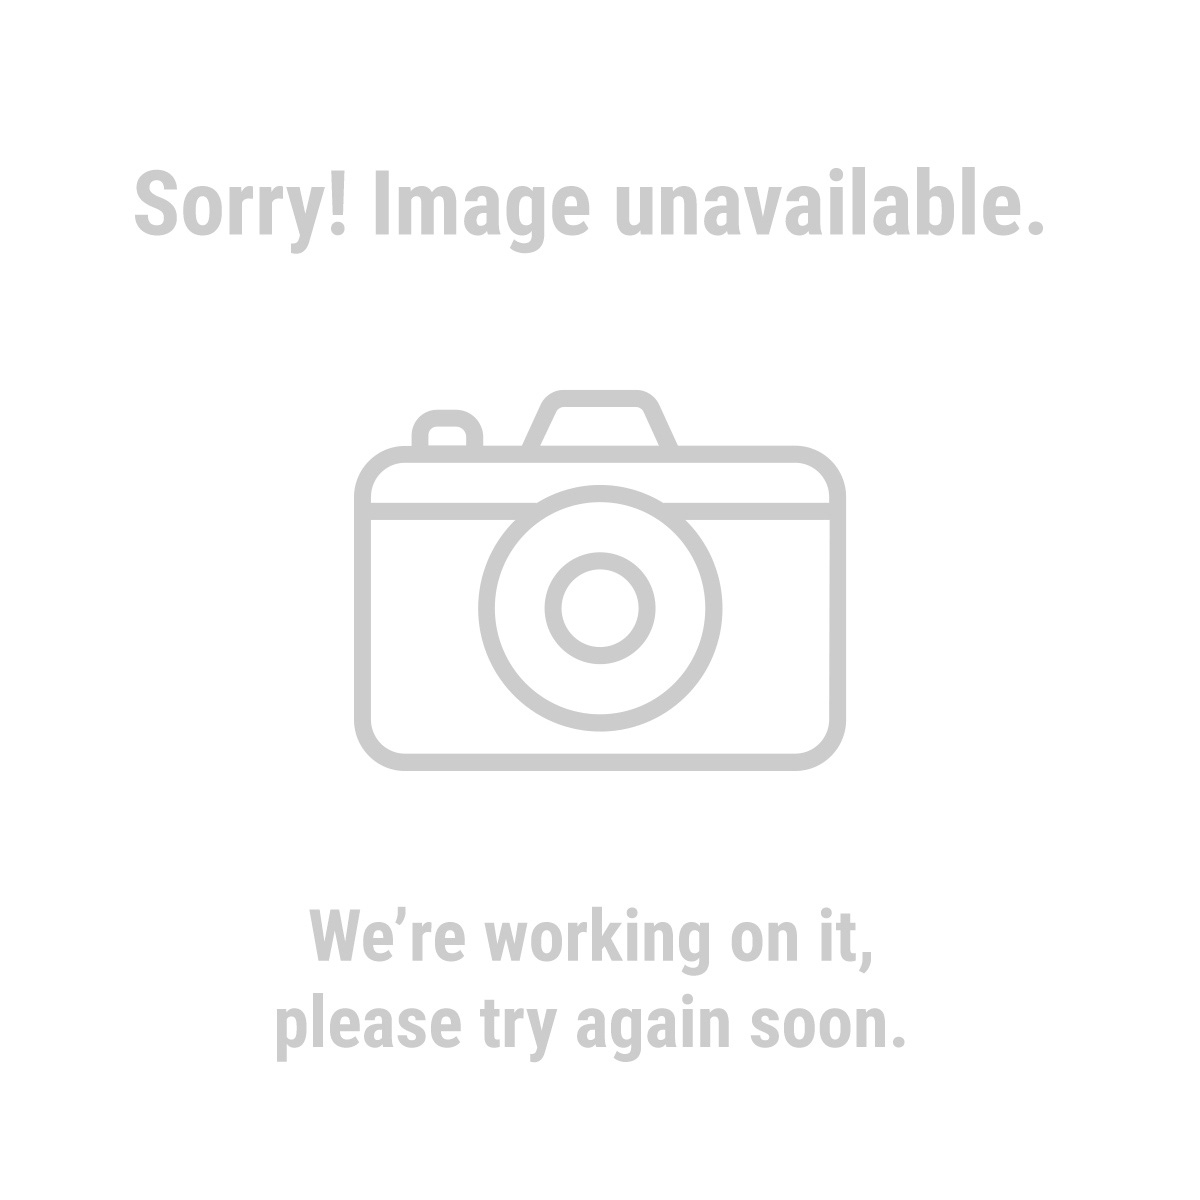 Chicago Electric Welding 65818 Portable Torch Kit with Oxygen and Acetylene Tanks